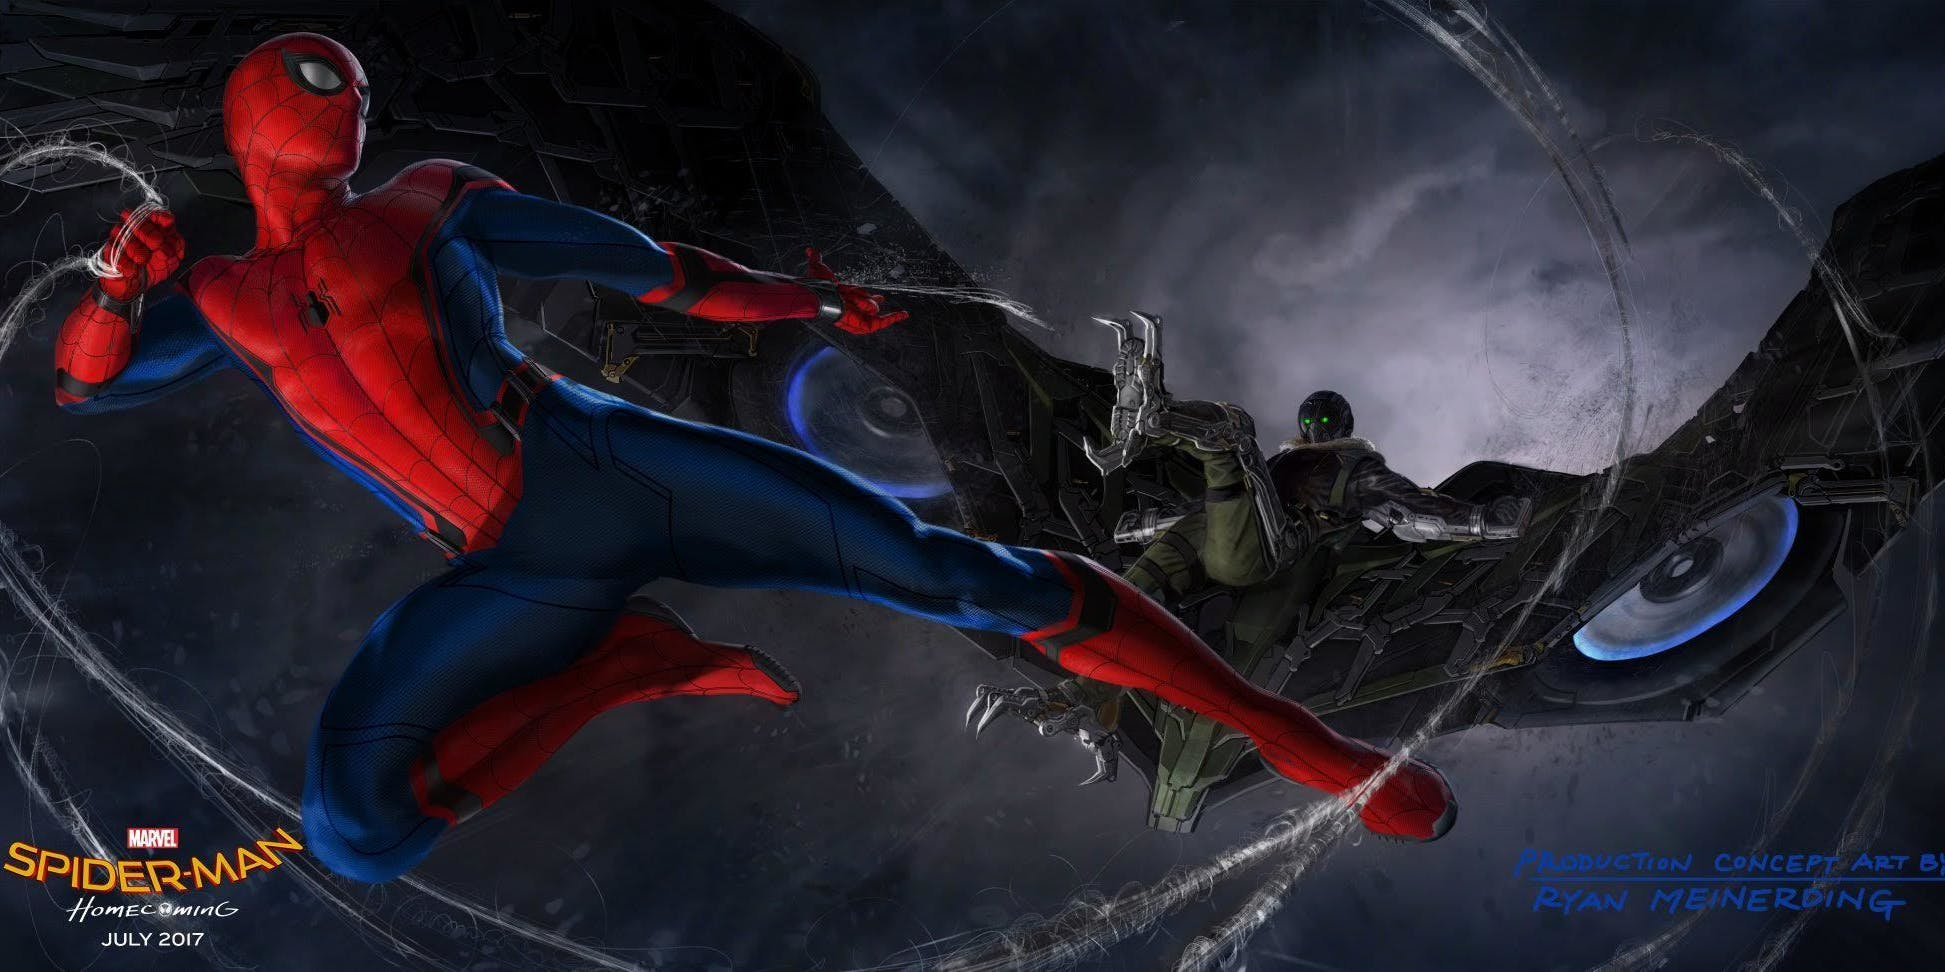 Spider-Man and Vulture in Spider-Man: Homecoming from Marvel